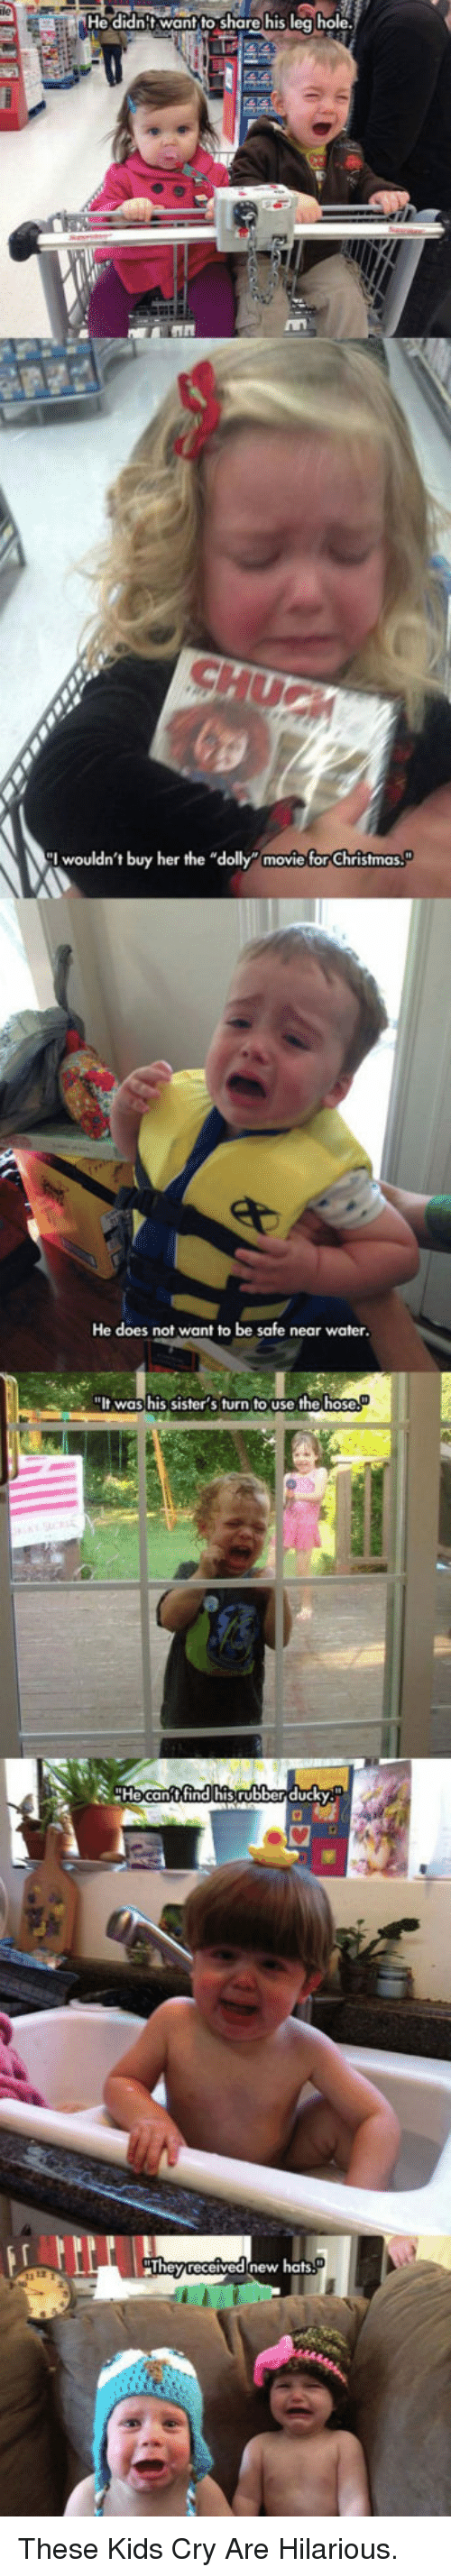 """Christmas, Kids, and Movie: He didnt wantto share his leg hole  I wouldn't buy her the """"dolly movie for Christmas  He does not want to be safe near water  aIt was his sister s turn to use the hose  Hecantfind hisrubber ducky  STI  d-new hats <p>These Kids Cry Are Hilarious.</p>"""